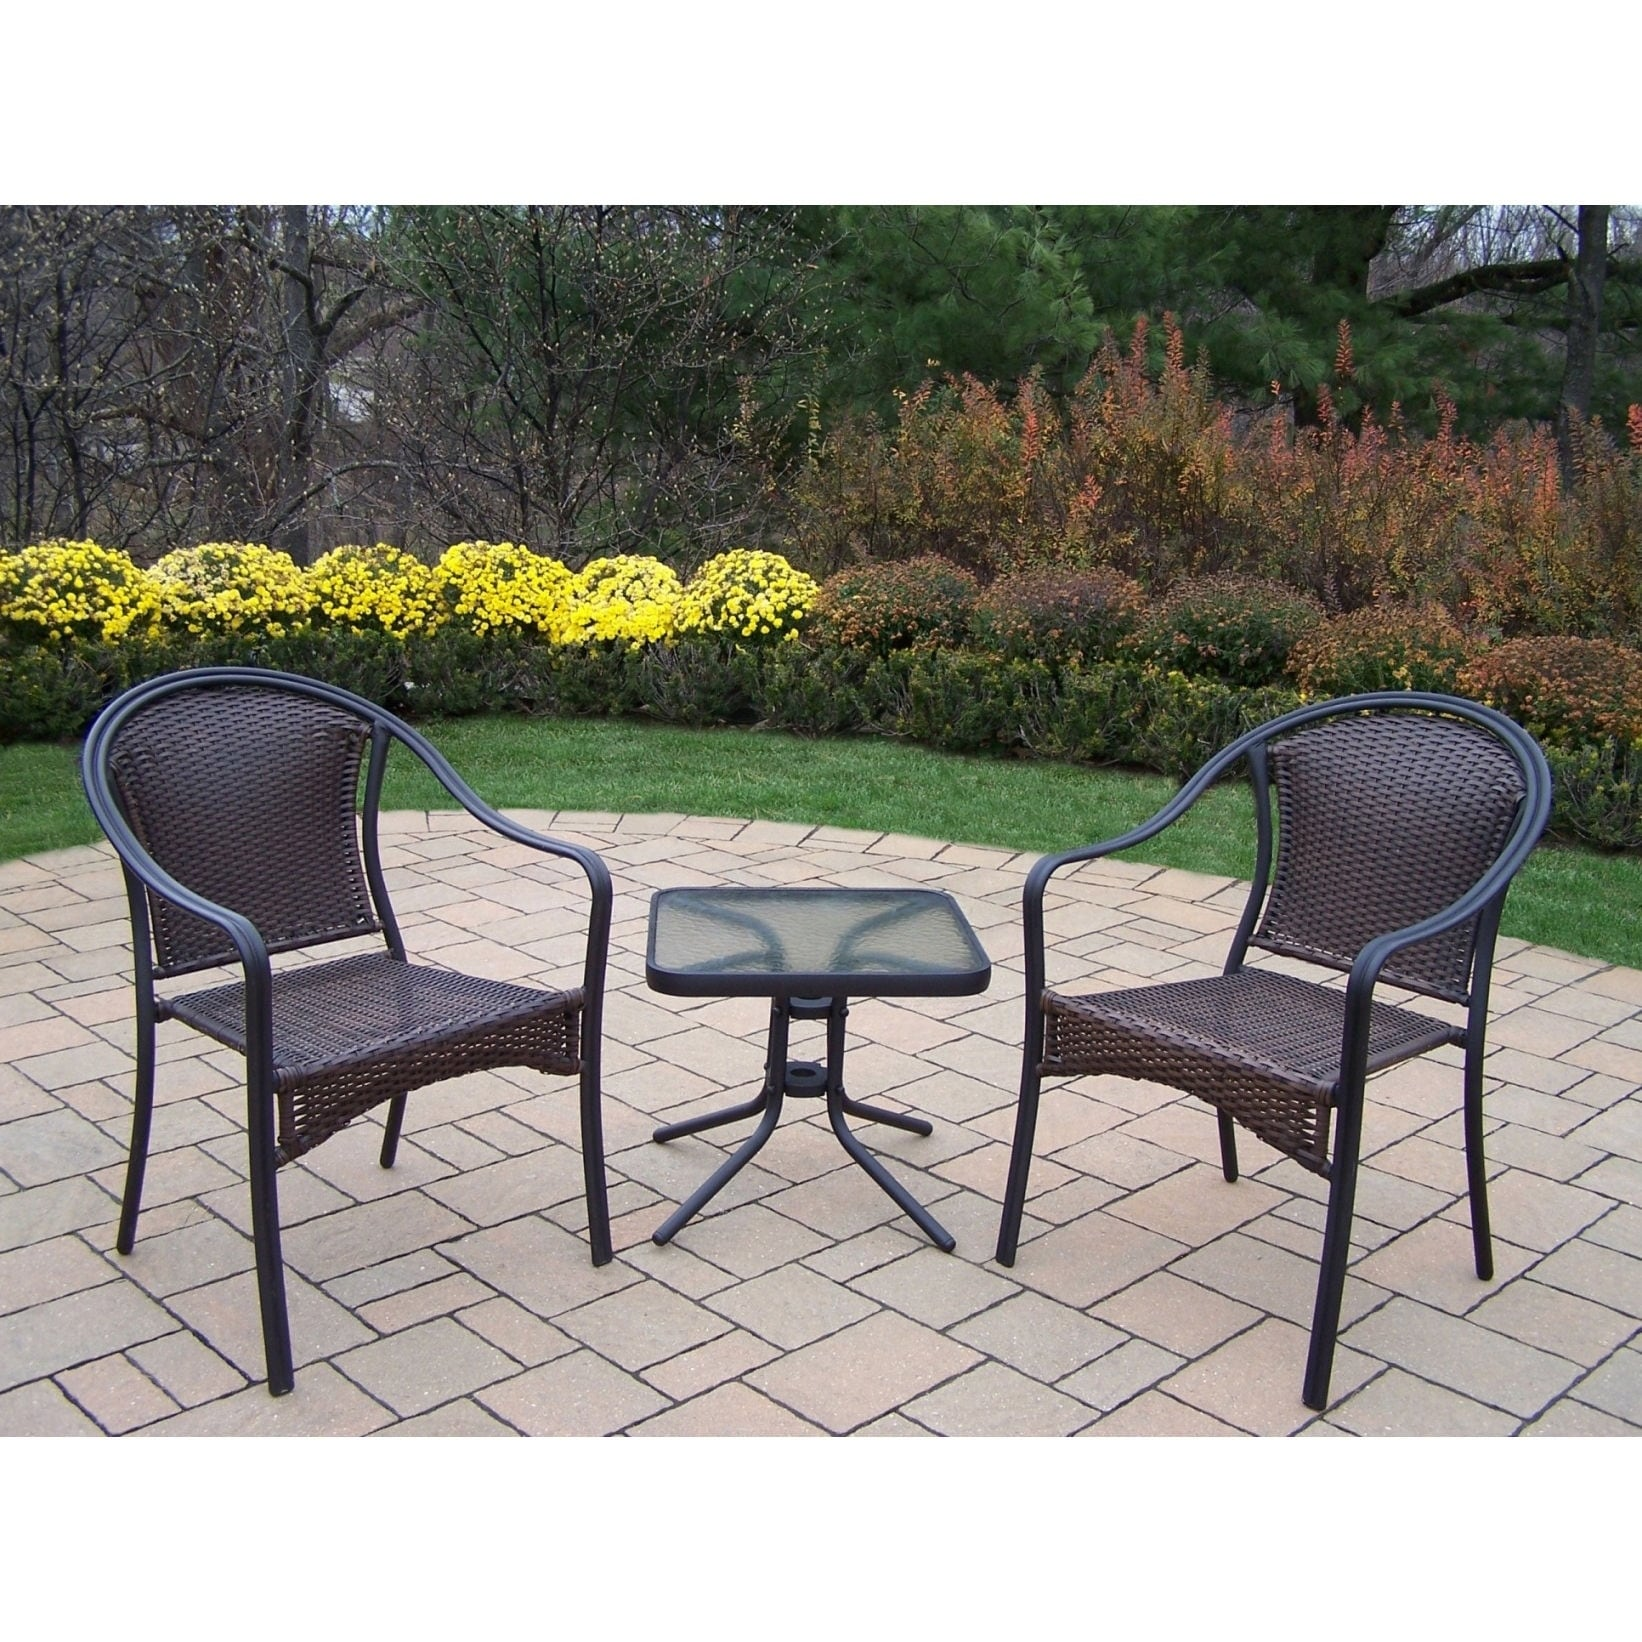 Oakland Corporation Sedona 3 Piece Set with Two Stackable...